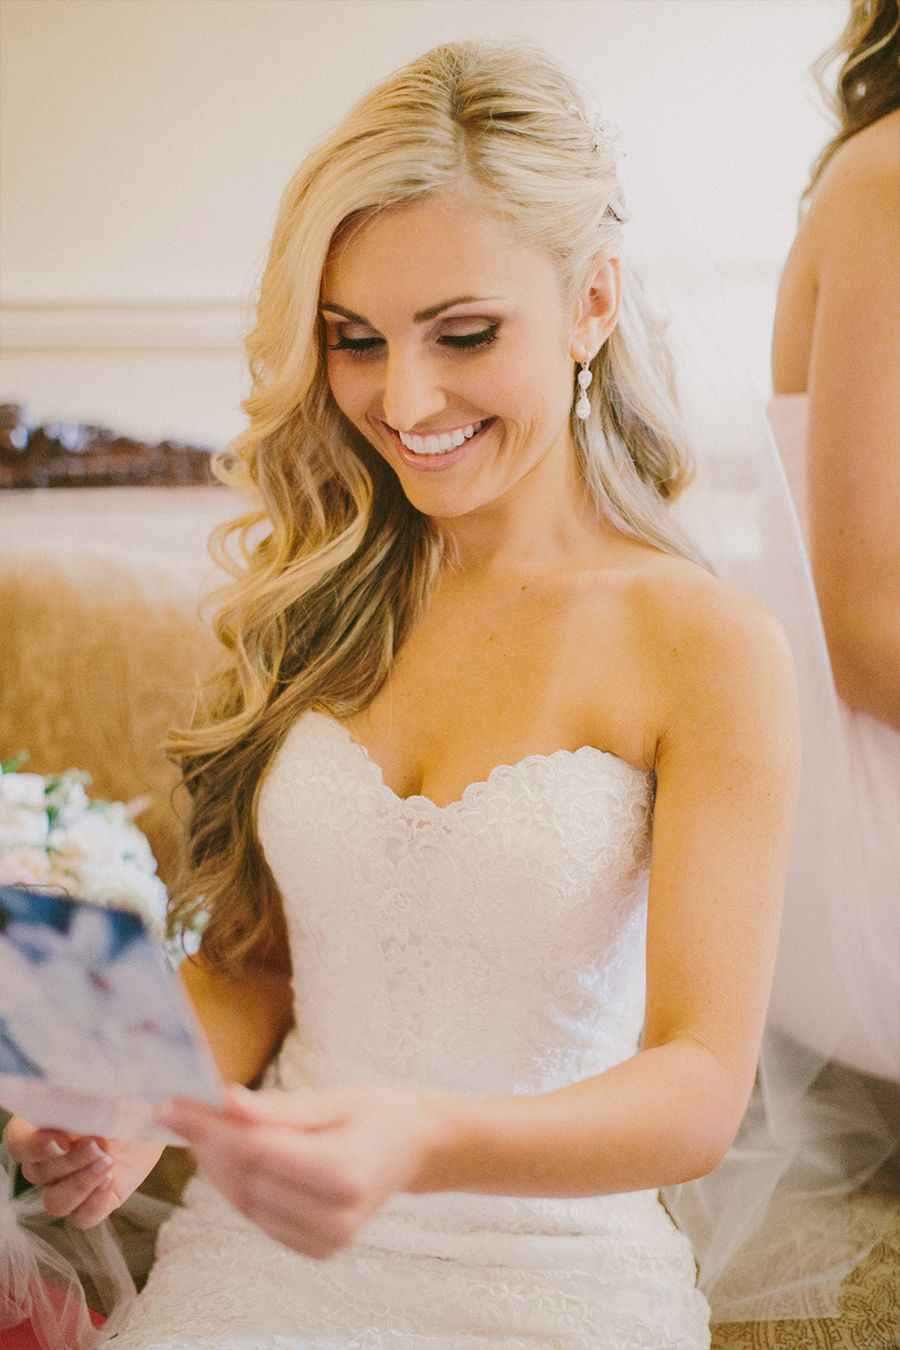 Wedding hair and makeup ideas | Hair & Makeup | Pinterest | More ...